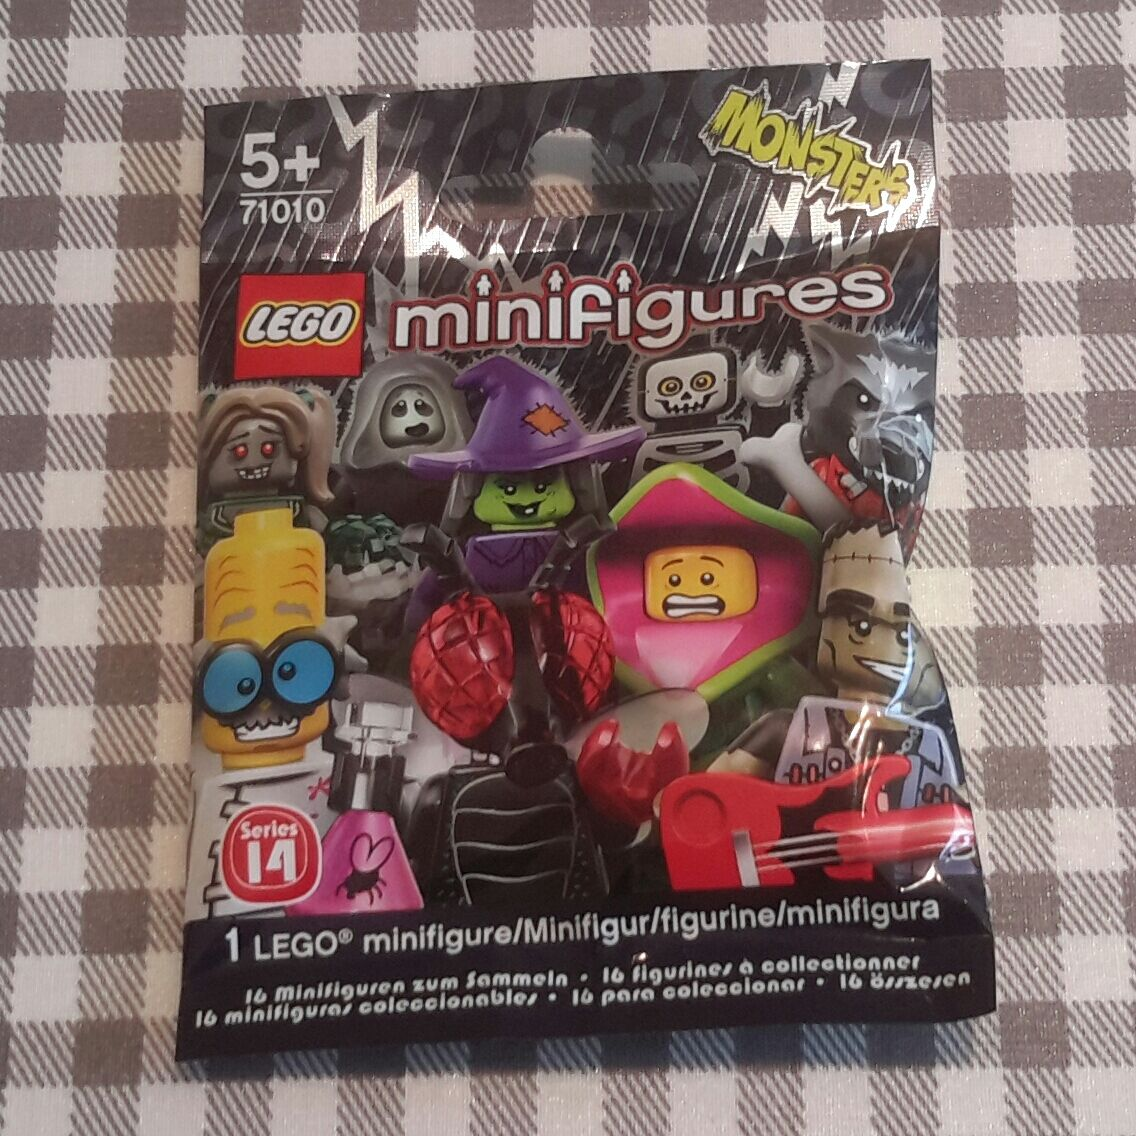 Lego minifigures series 14 (71010) complete unopened set x 16 16 16 new factory sealed bcdc2f